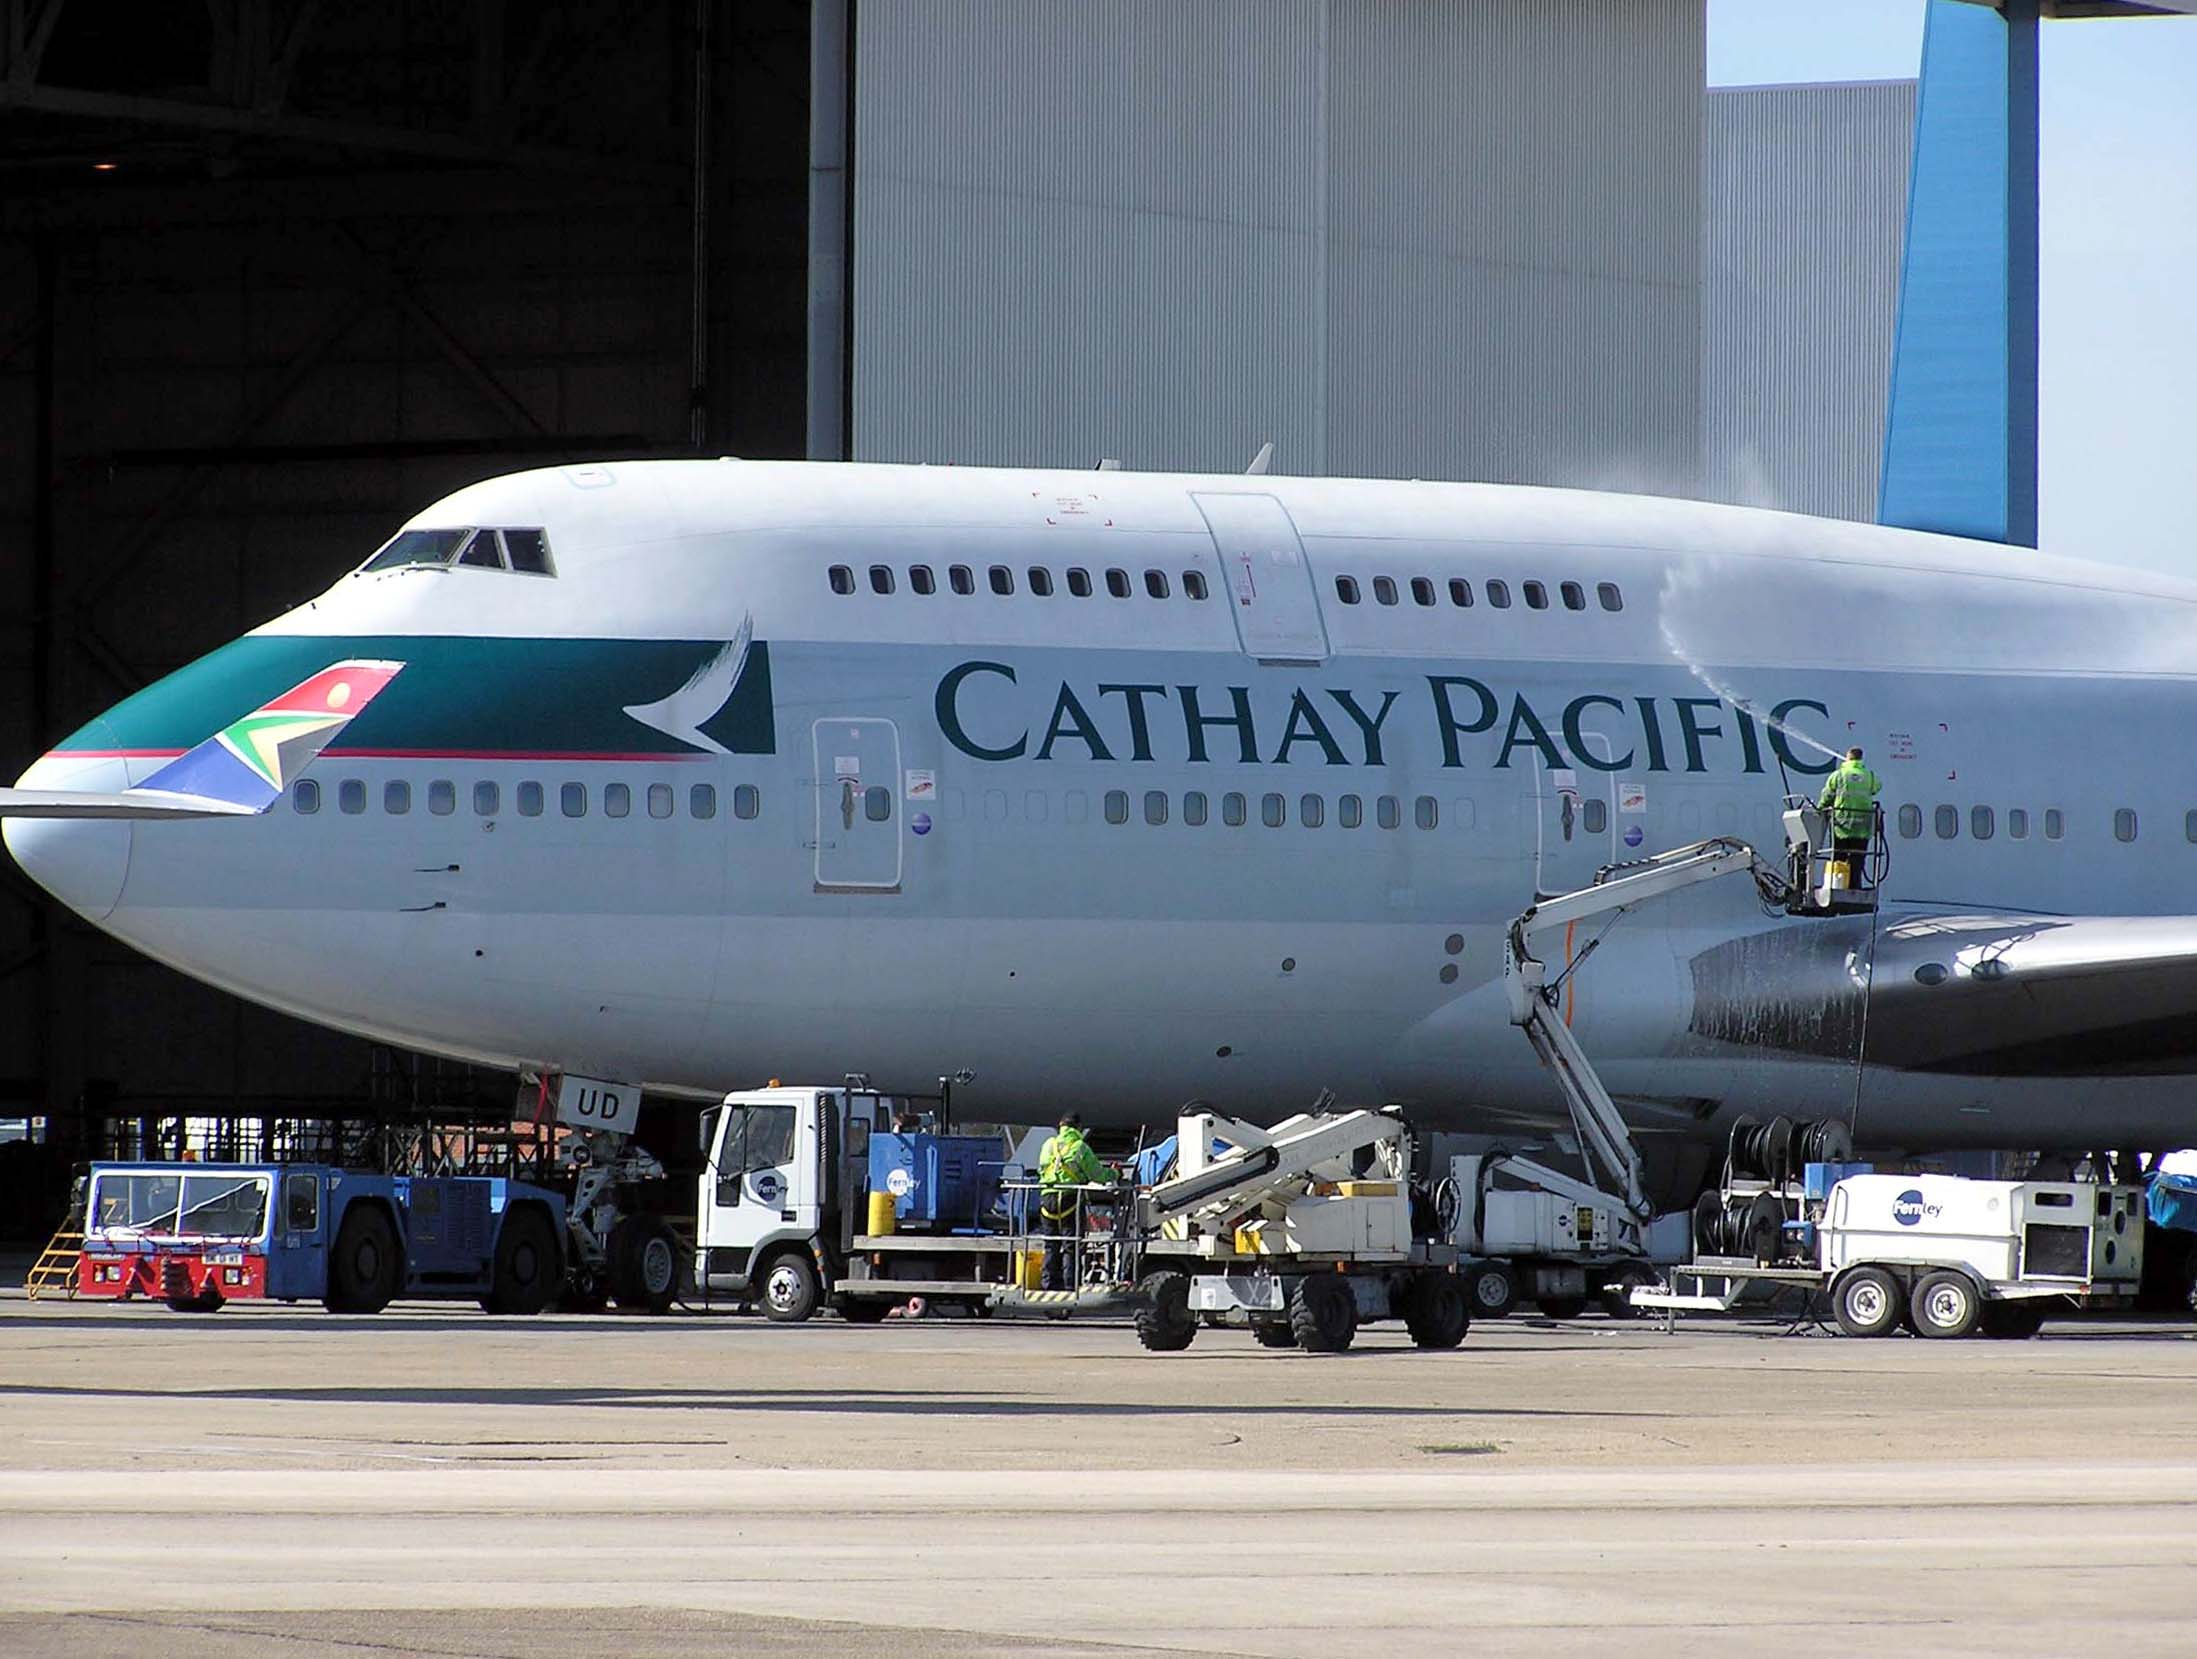 cathay pacific 747 travel and tourism